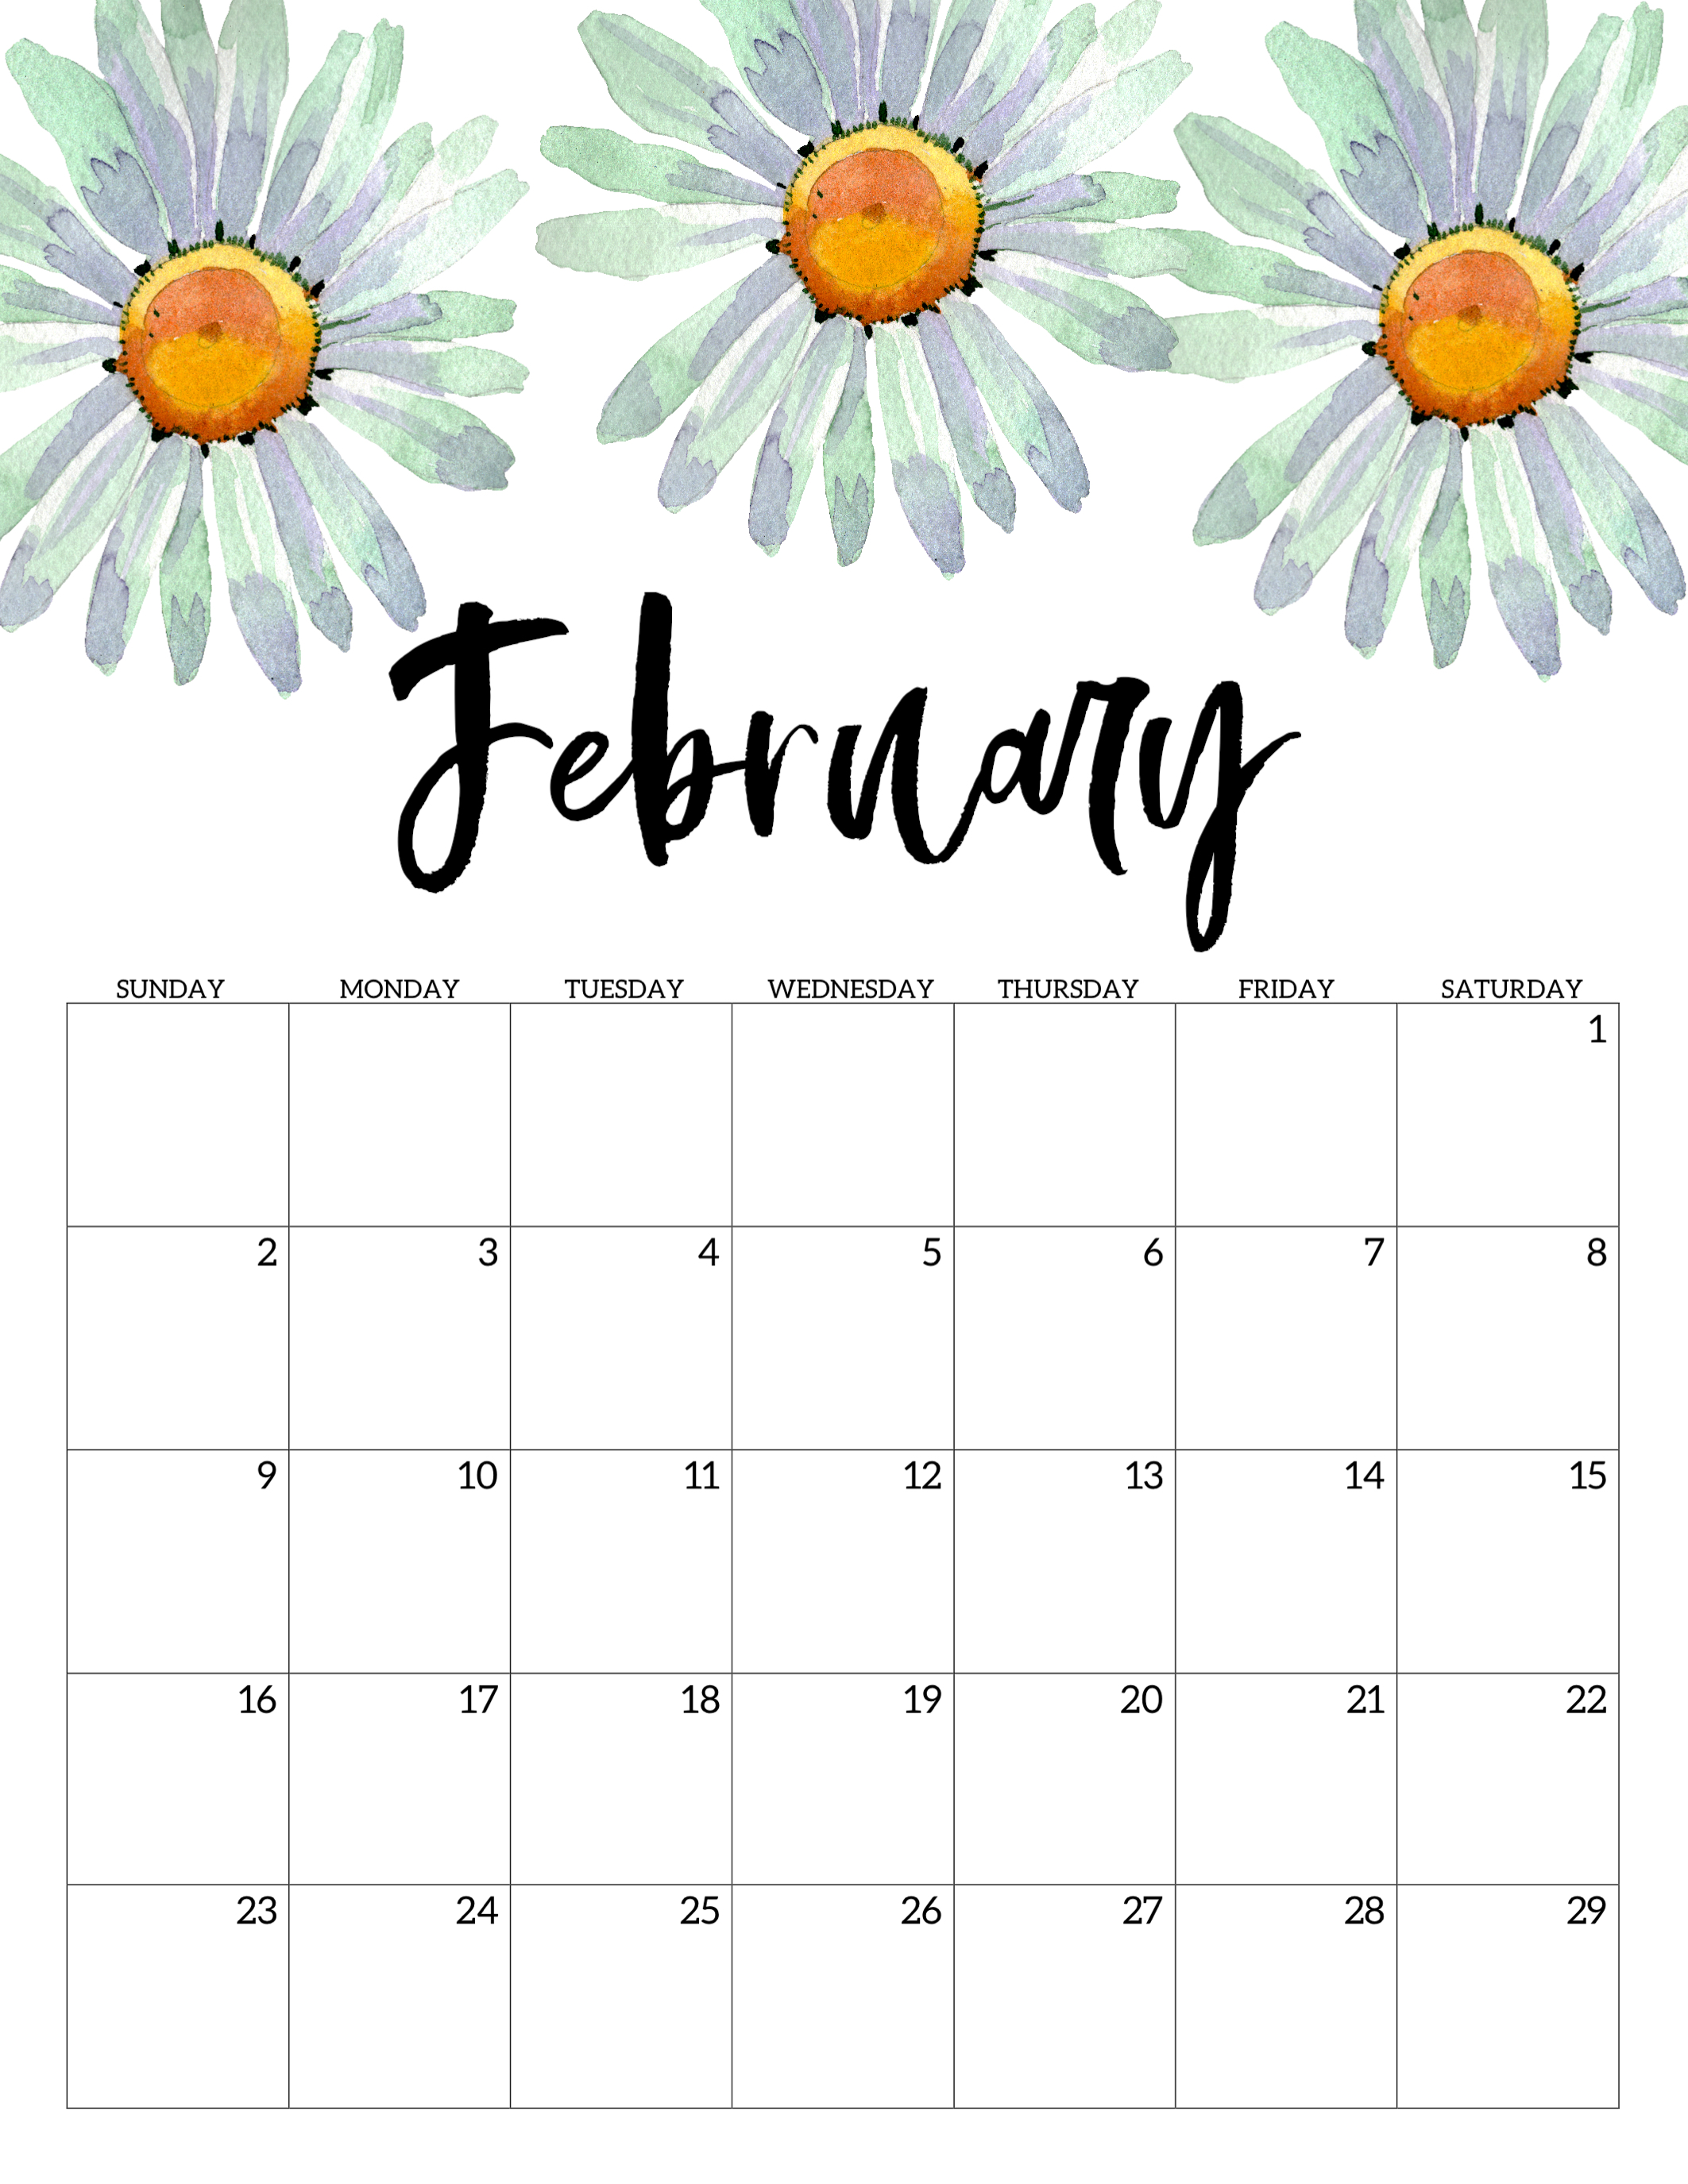 photograph relating to Printable Calendar 2020 identified as 2020 Free of charge Printable Calendar - Floral - Paper Path Style and design